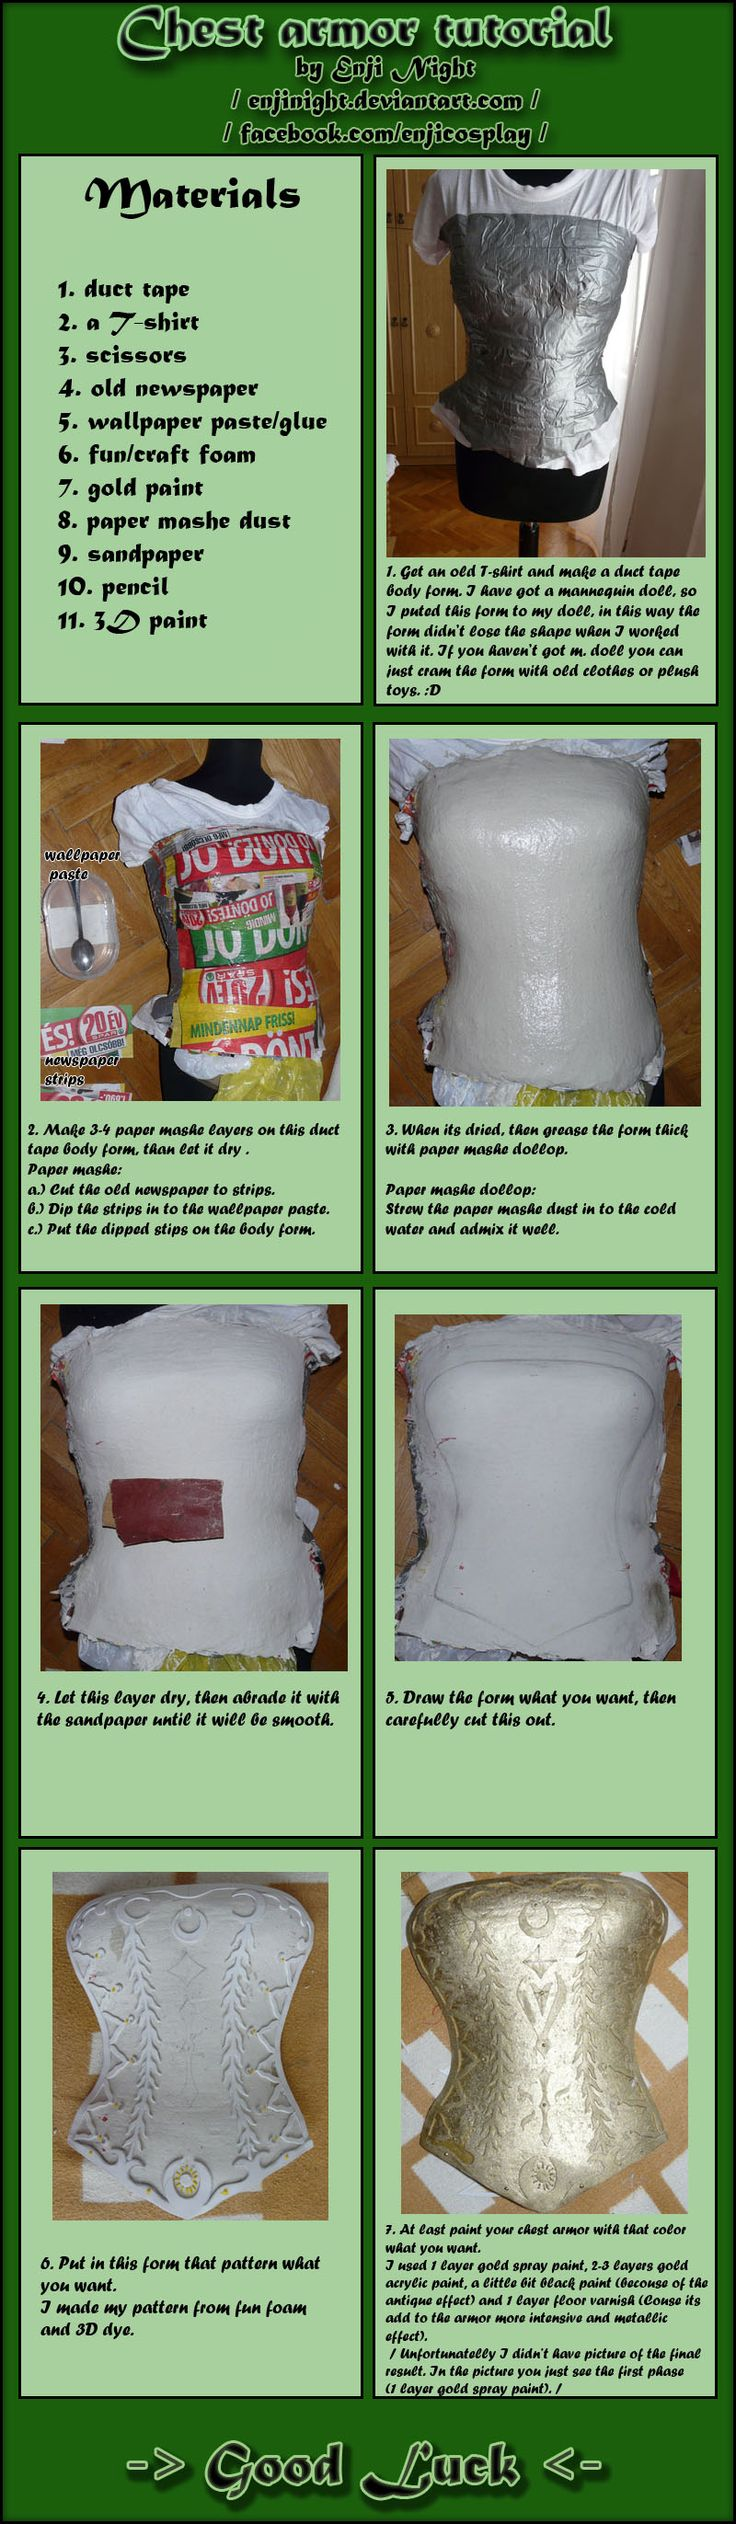 Chest armor tutorial by *EnjiNight This is a really detailed step by